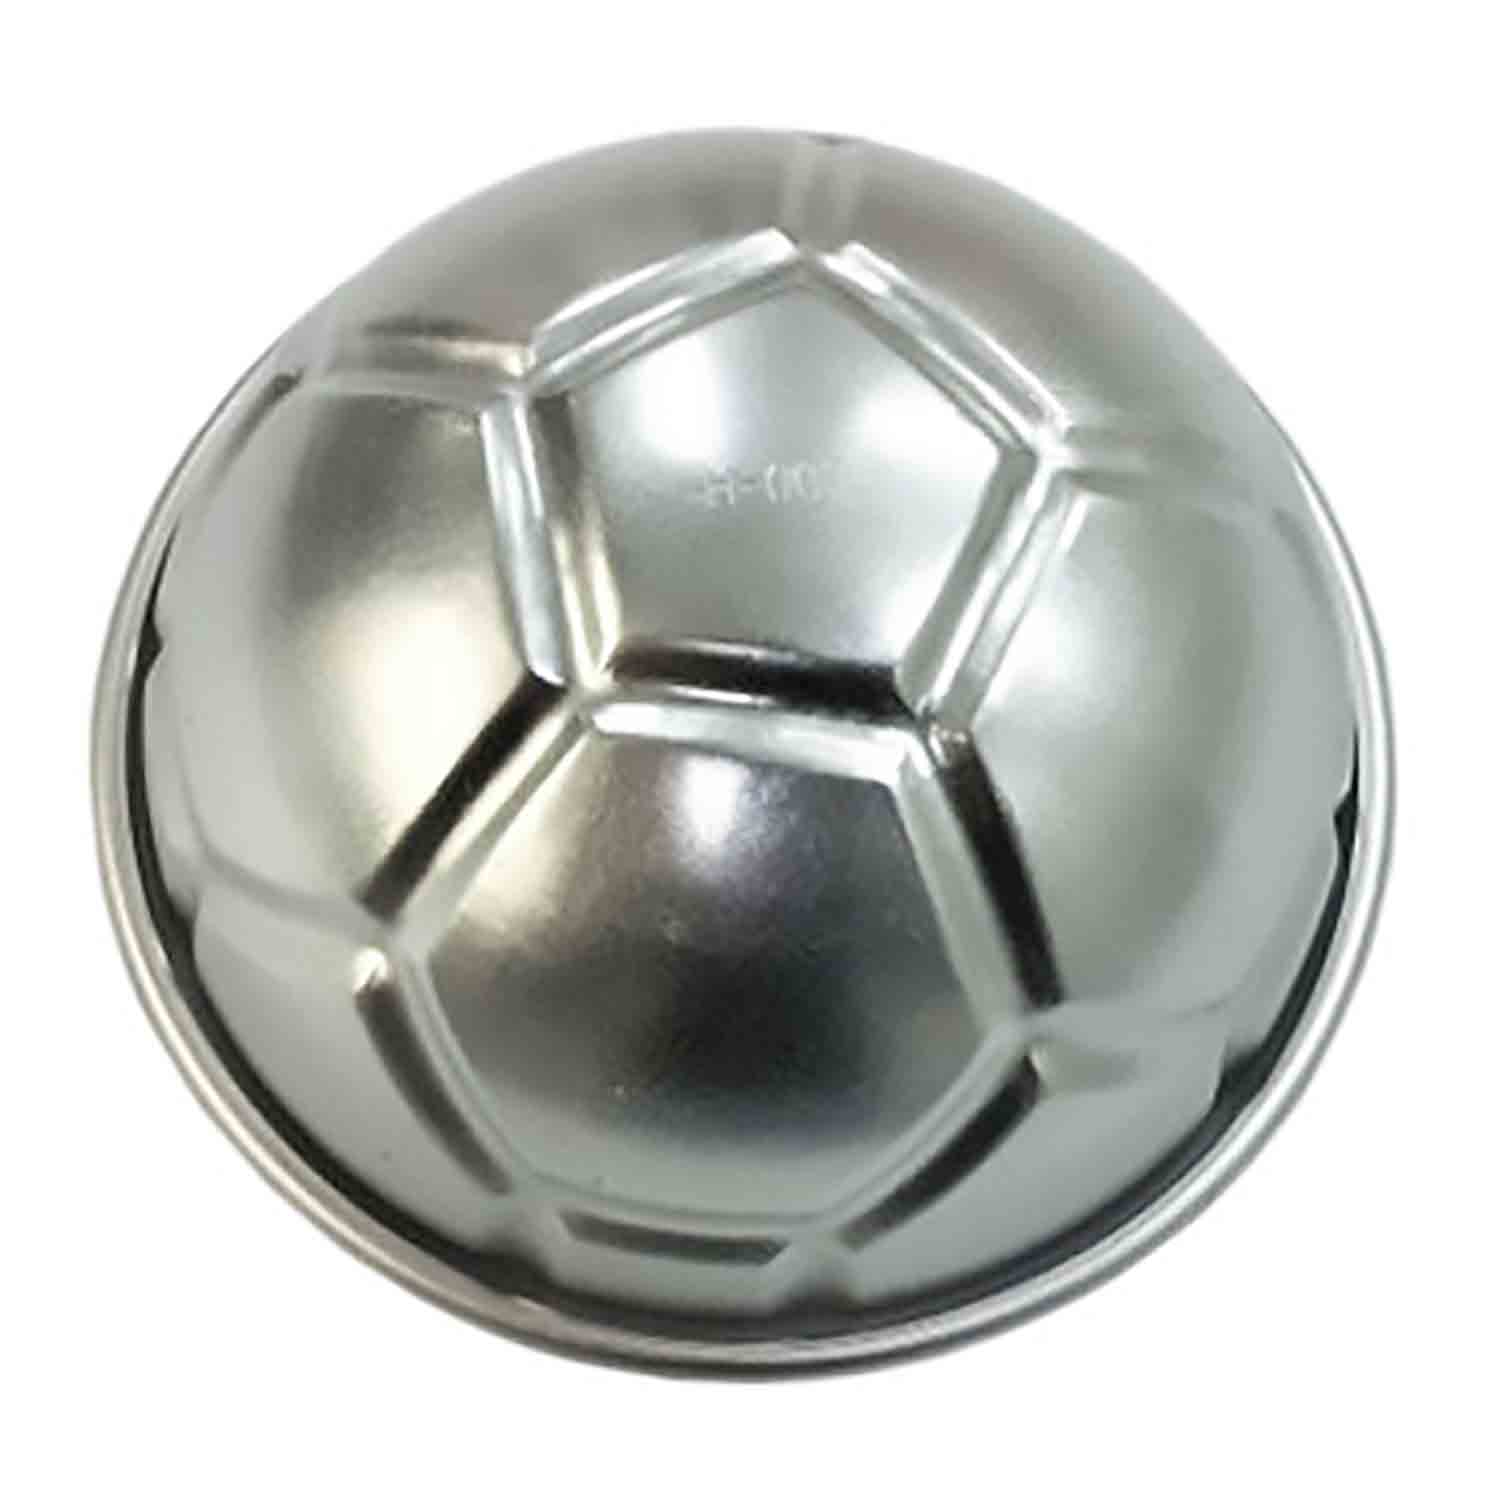 Mini Soccer Ball Cake Pan